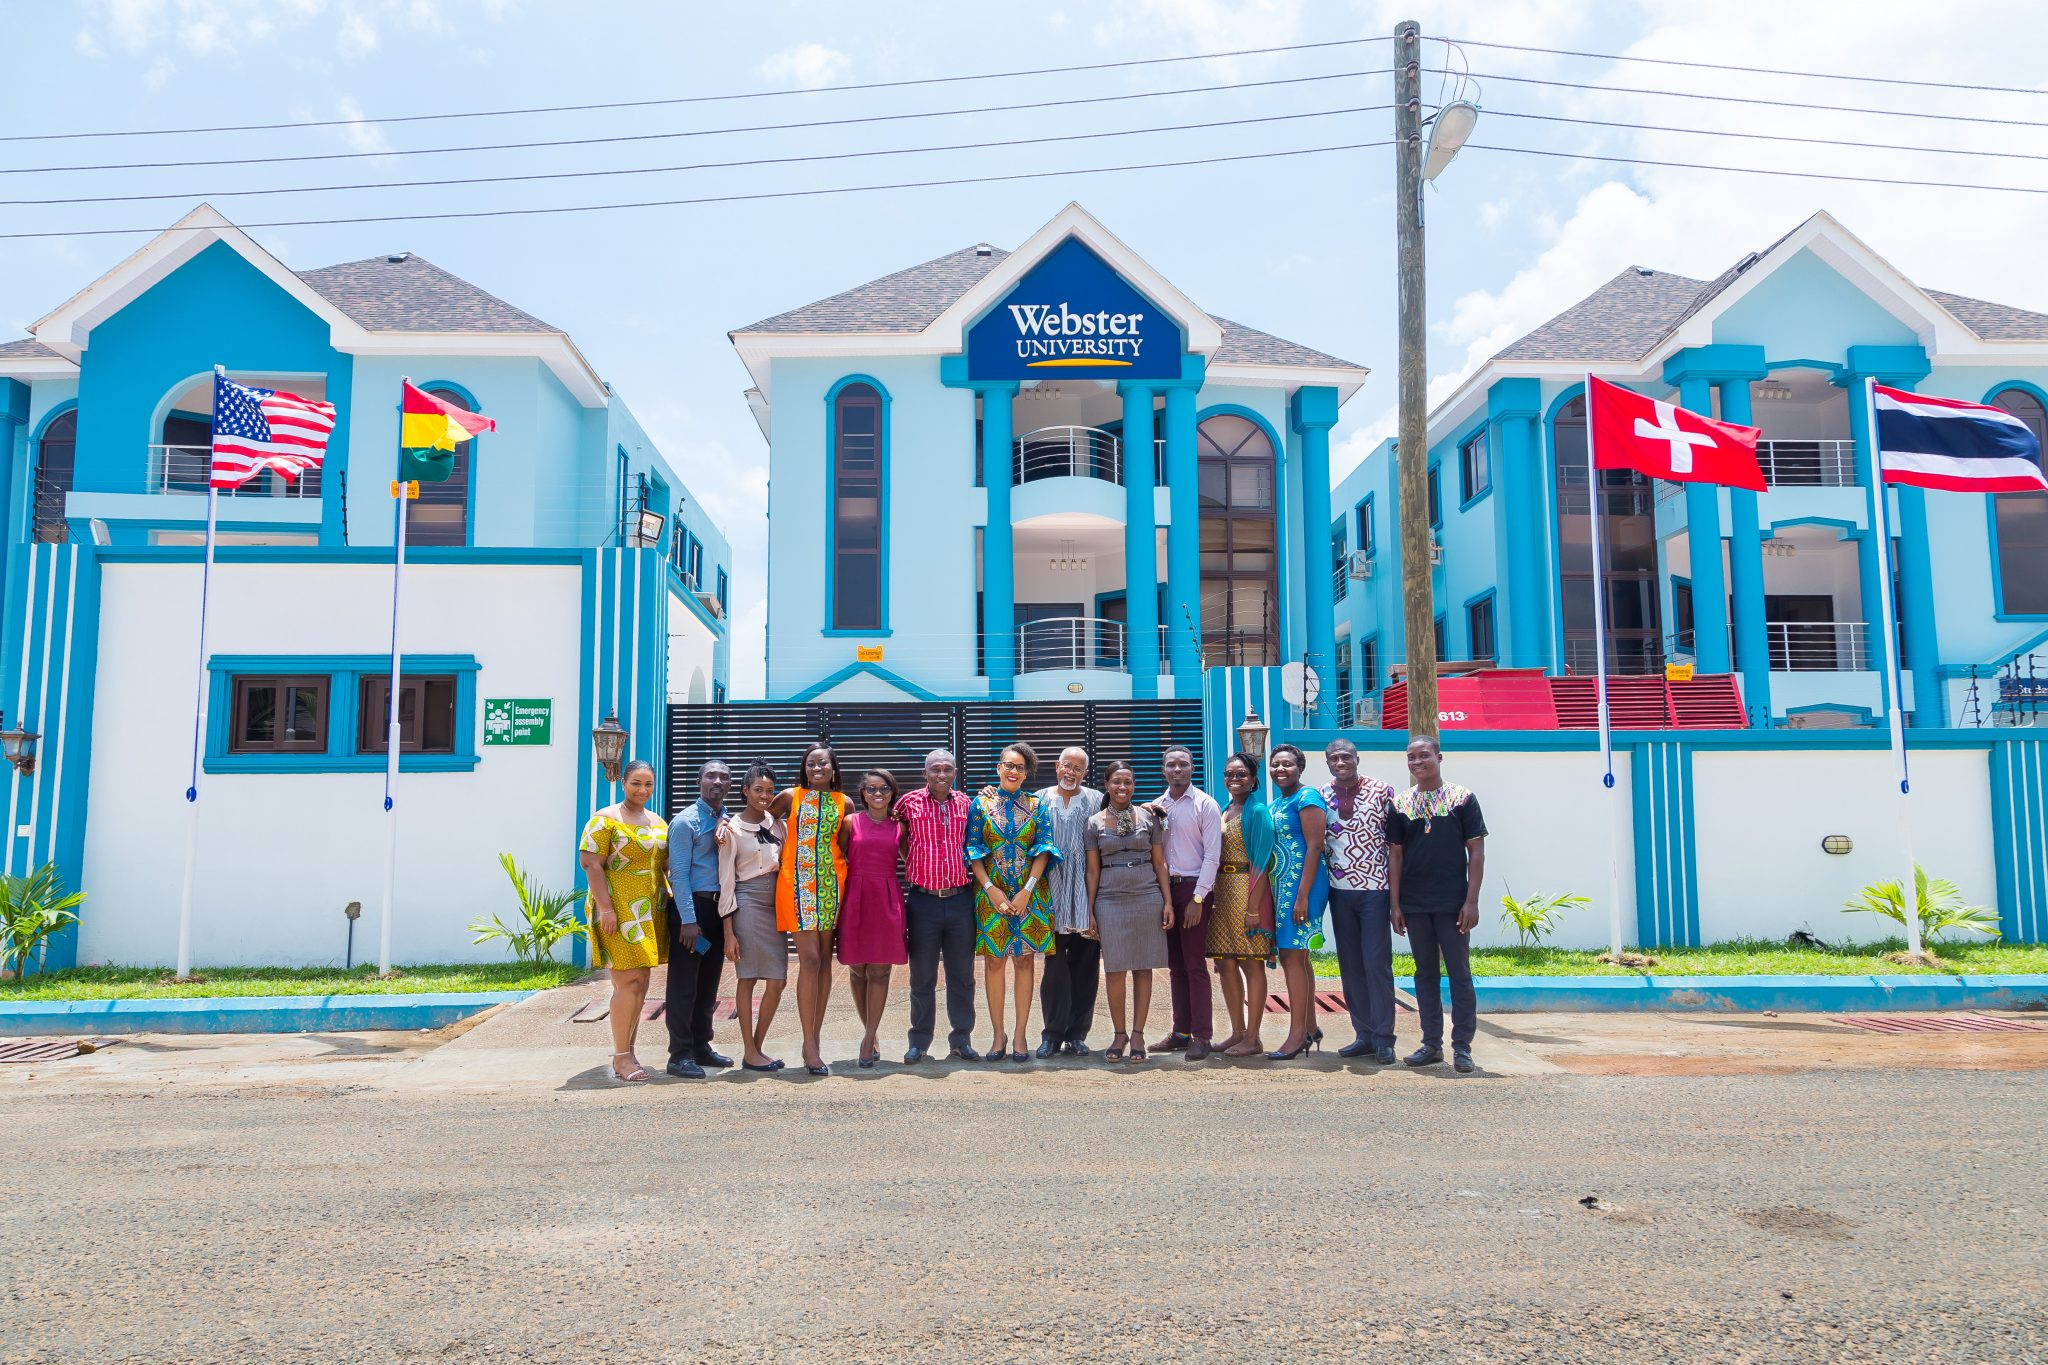 The latest Webster University campus is located in Ghana